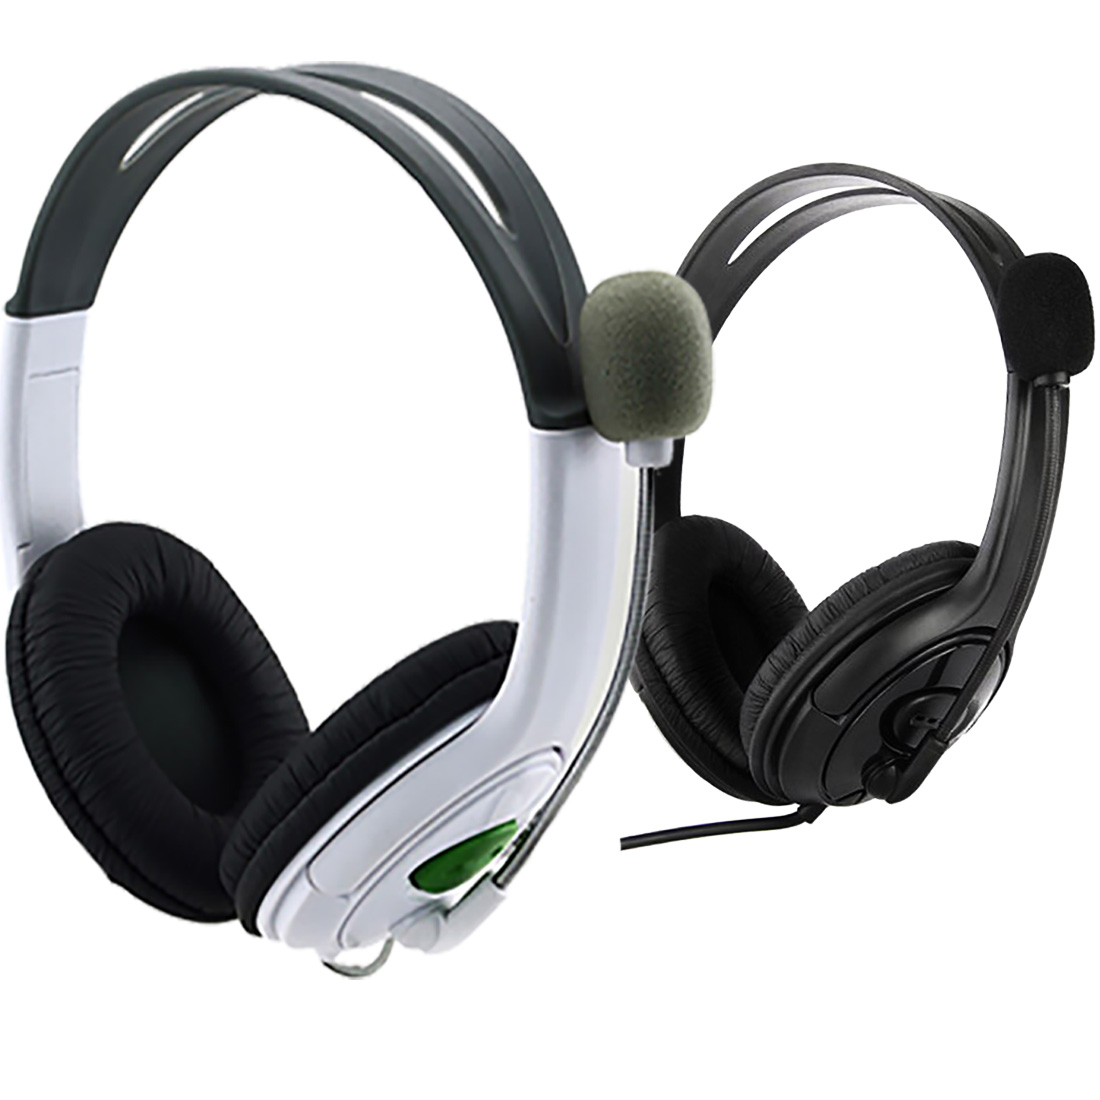 Top Quality PC Gamer Over-ear Game Gaming Headphone Headset usb dual Earphone Headband with Mic Stereo Sound Bass for ps3 pc